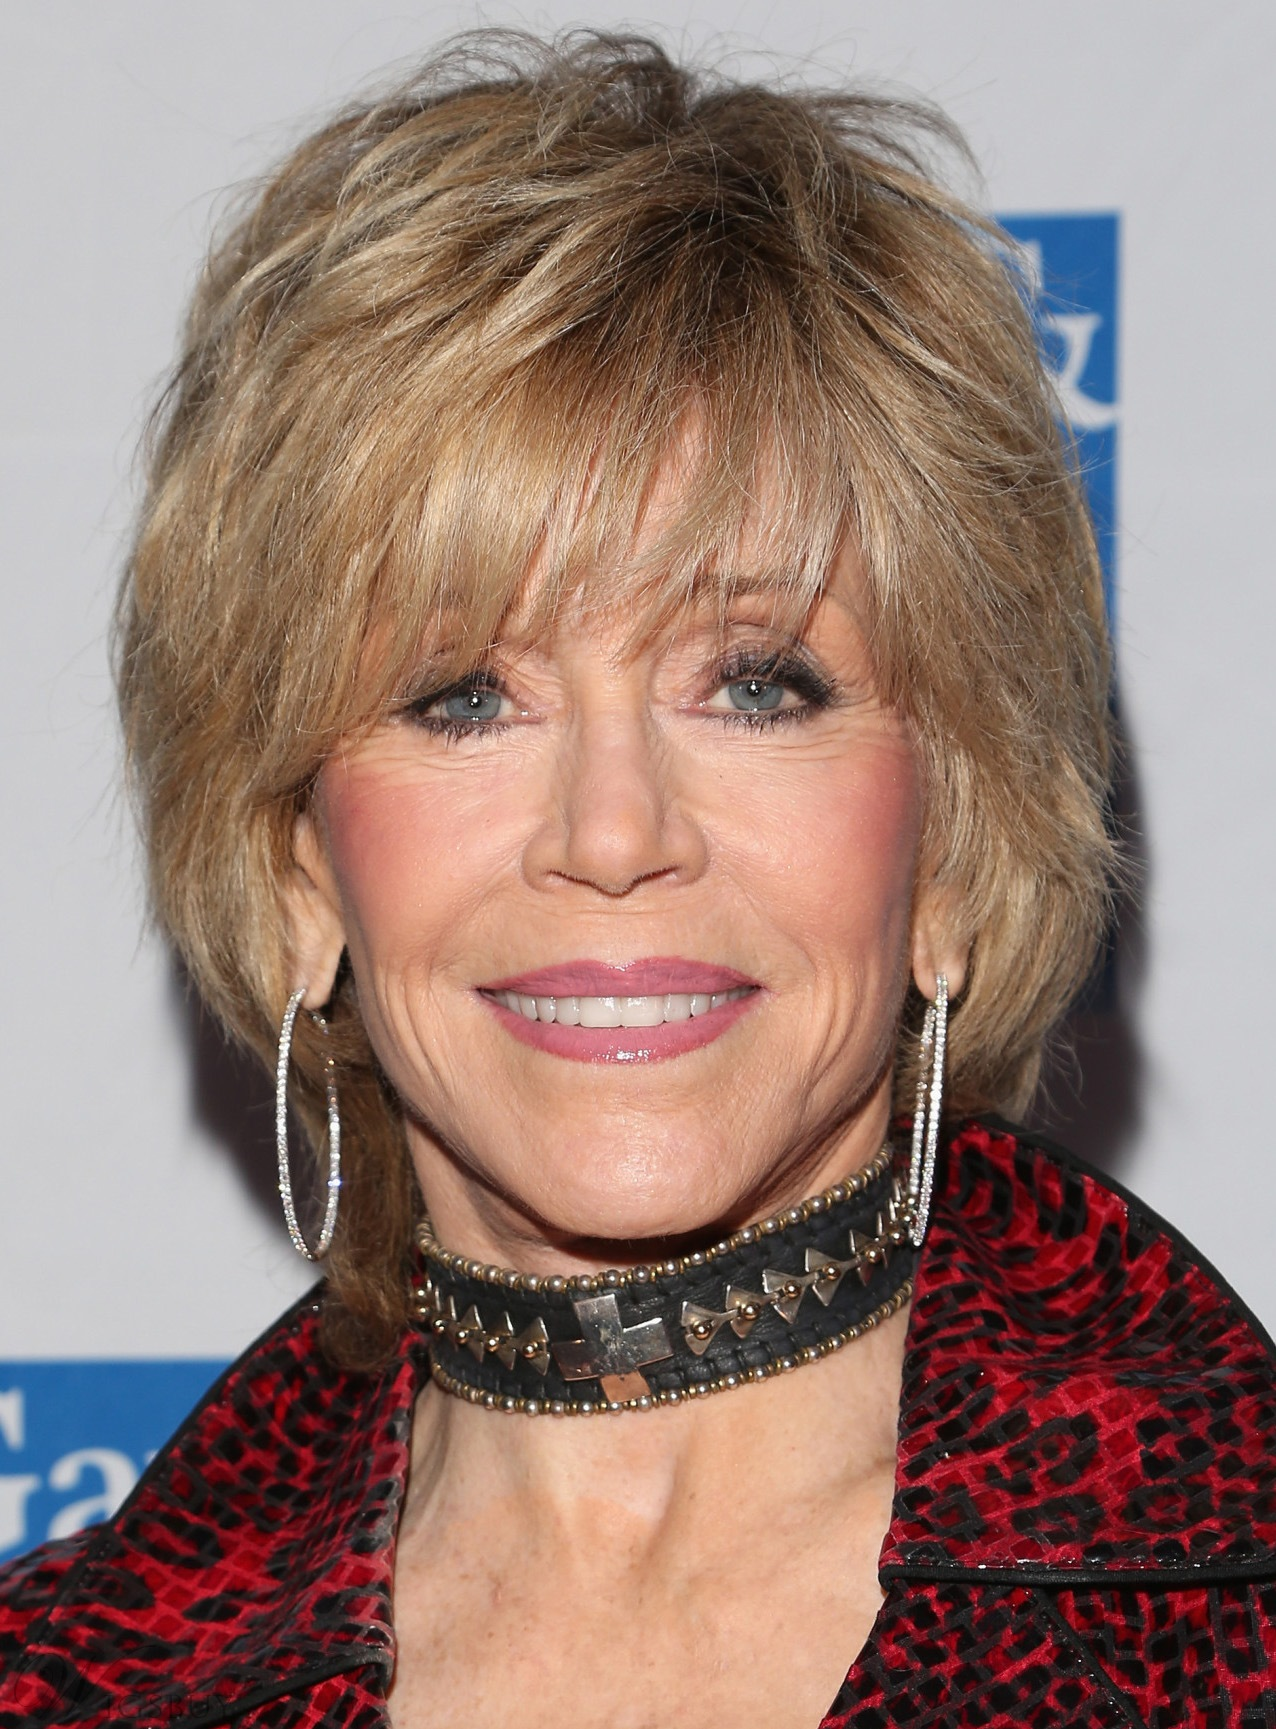 Popular Jane Fonda Style Short Straight Layered Synthetic Hair Capless Wig 8 Inches 11664617